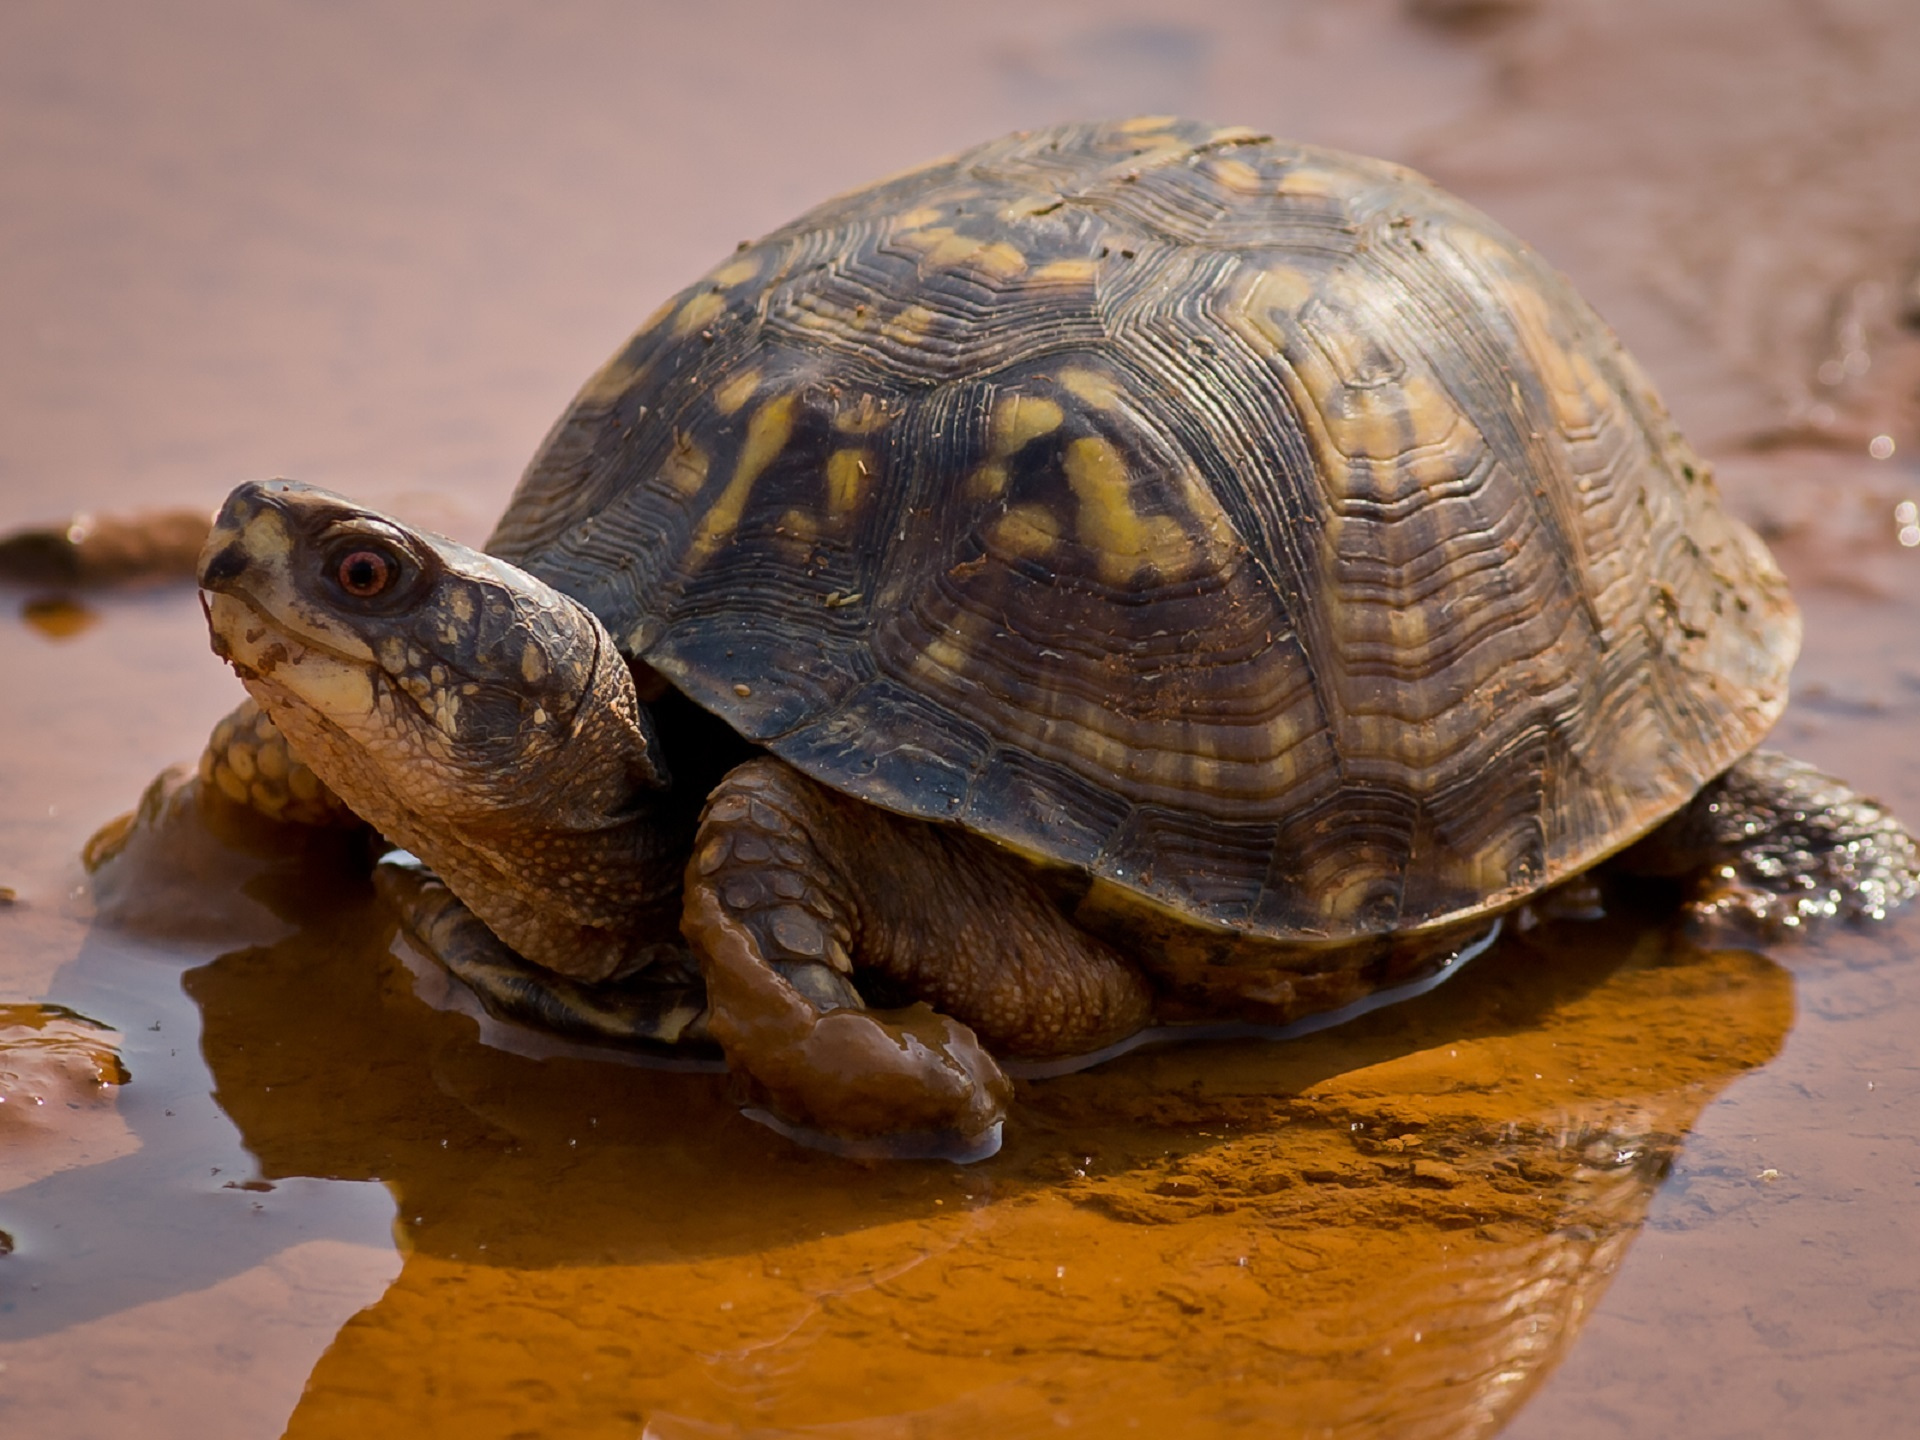 Turtle in the Water, Animal, Lake, Nature, River, HQ Photo